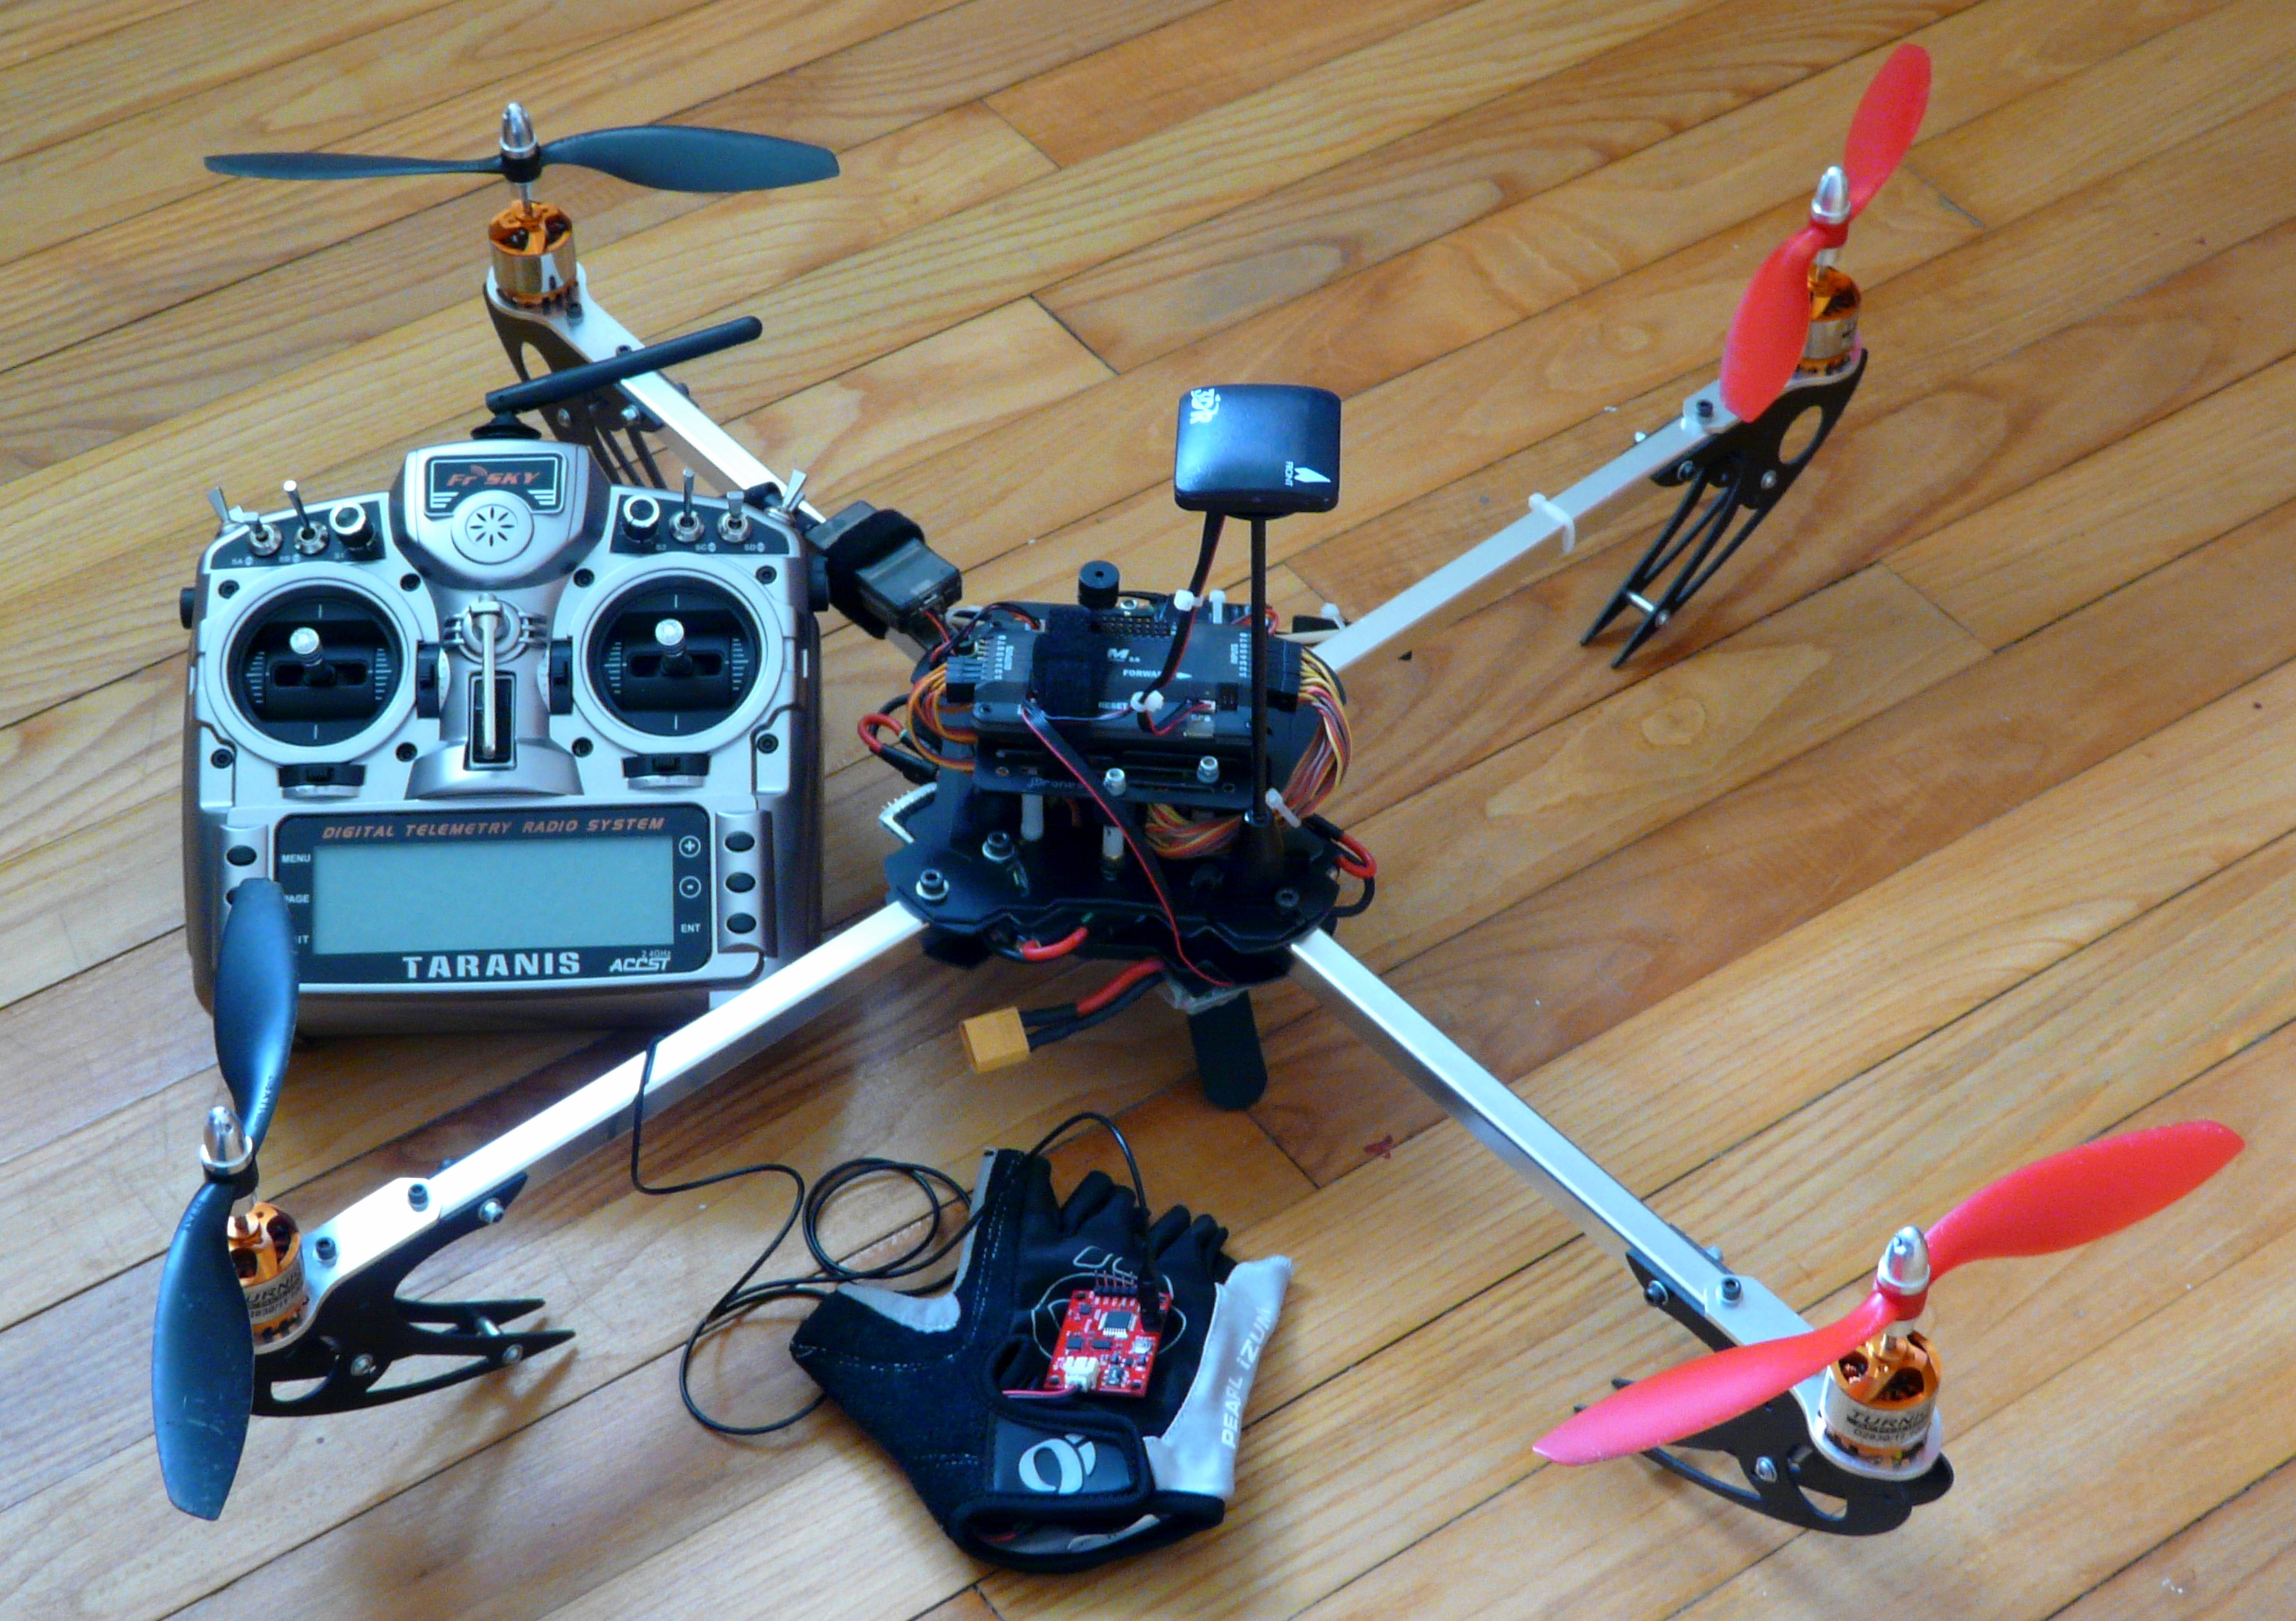 Quadcopter, radio transmitter and glove